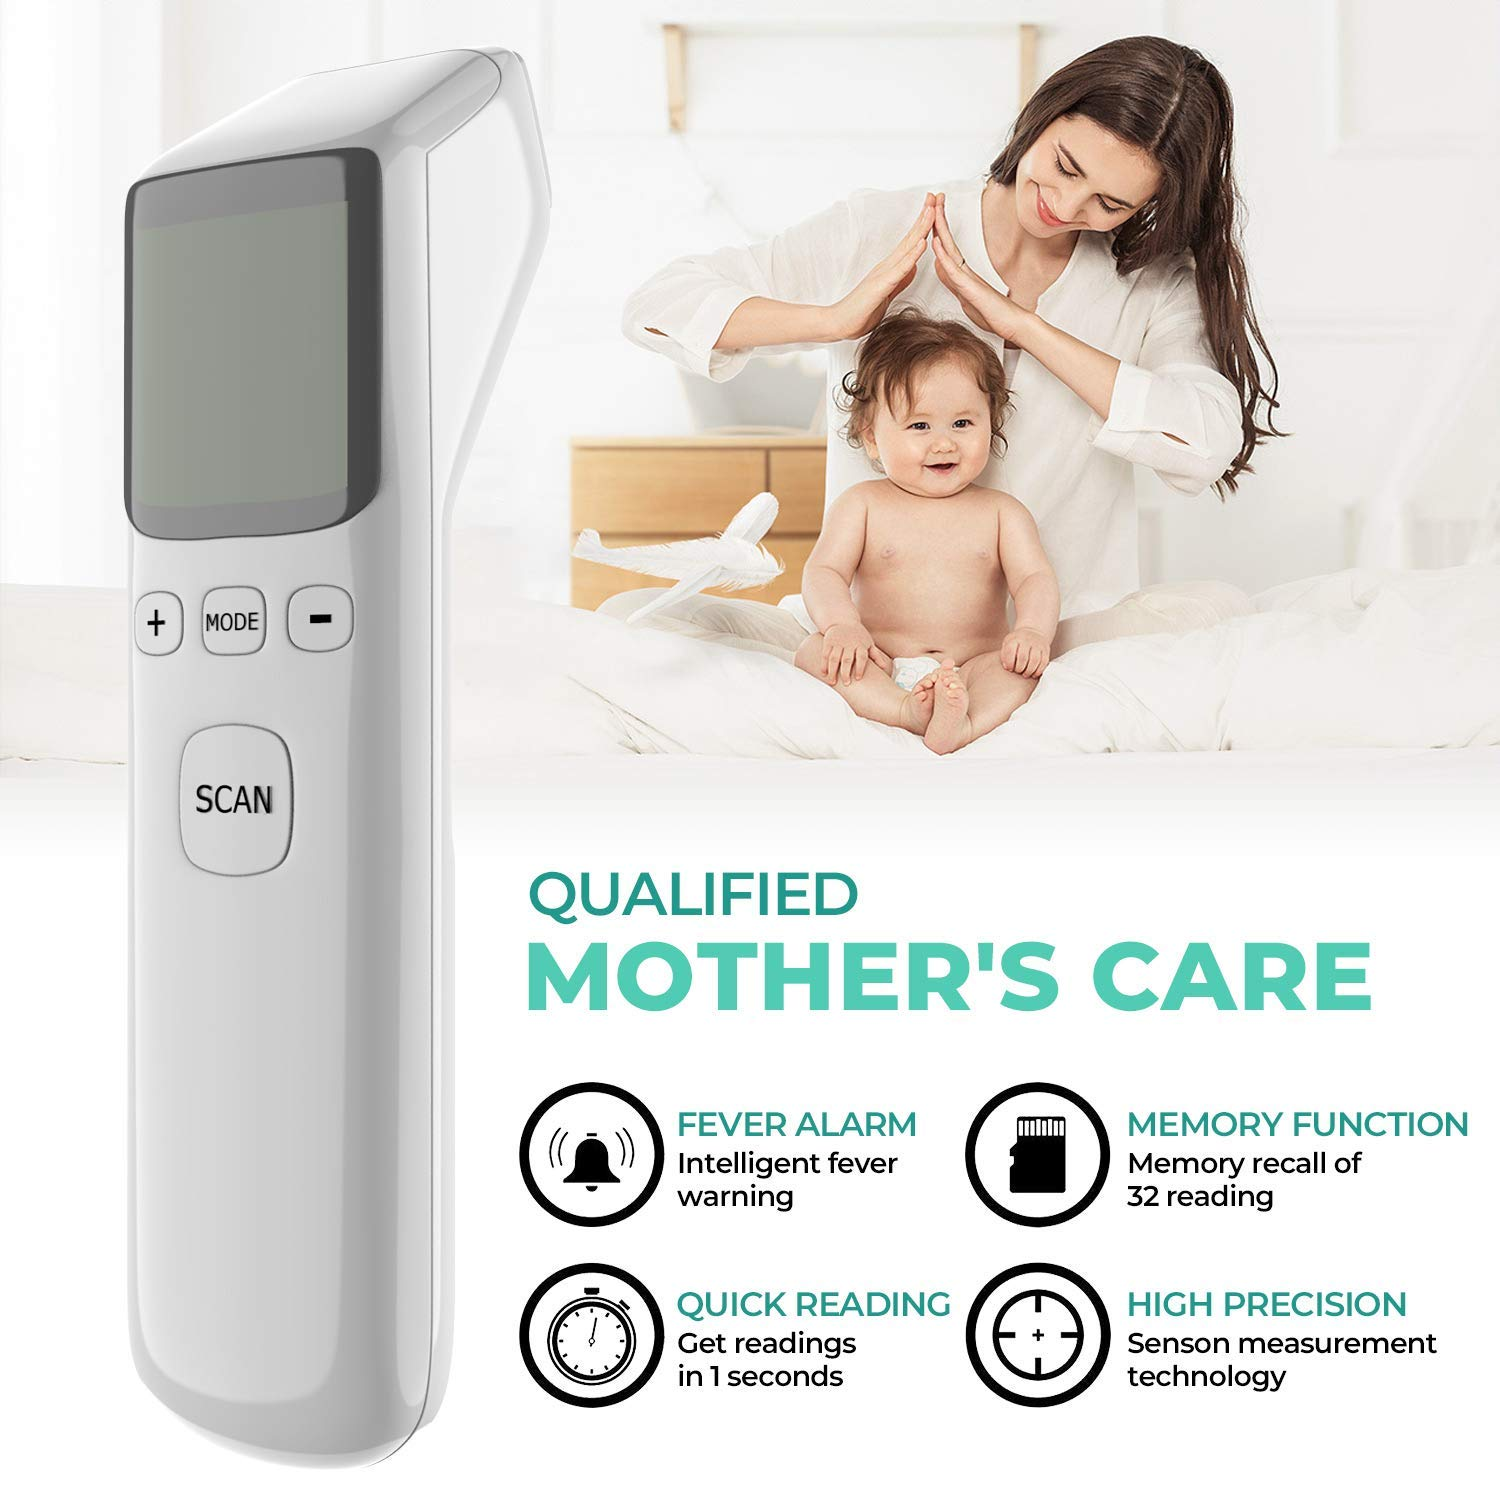 Forehead Thermometer Infrared Baby Thermometer for Fever Clinical Digital Ear Thermometer for Surface Body with LCD Display Instant Reading for Baby Kids Adult Home Use